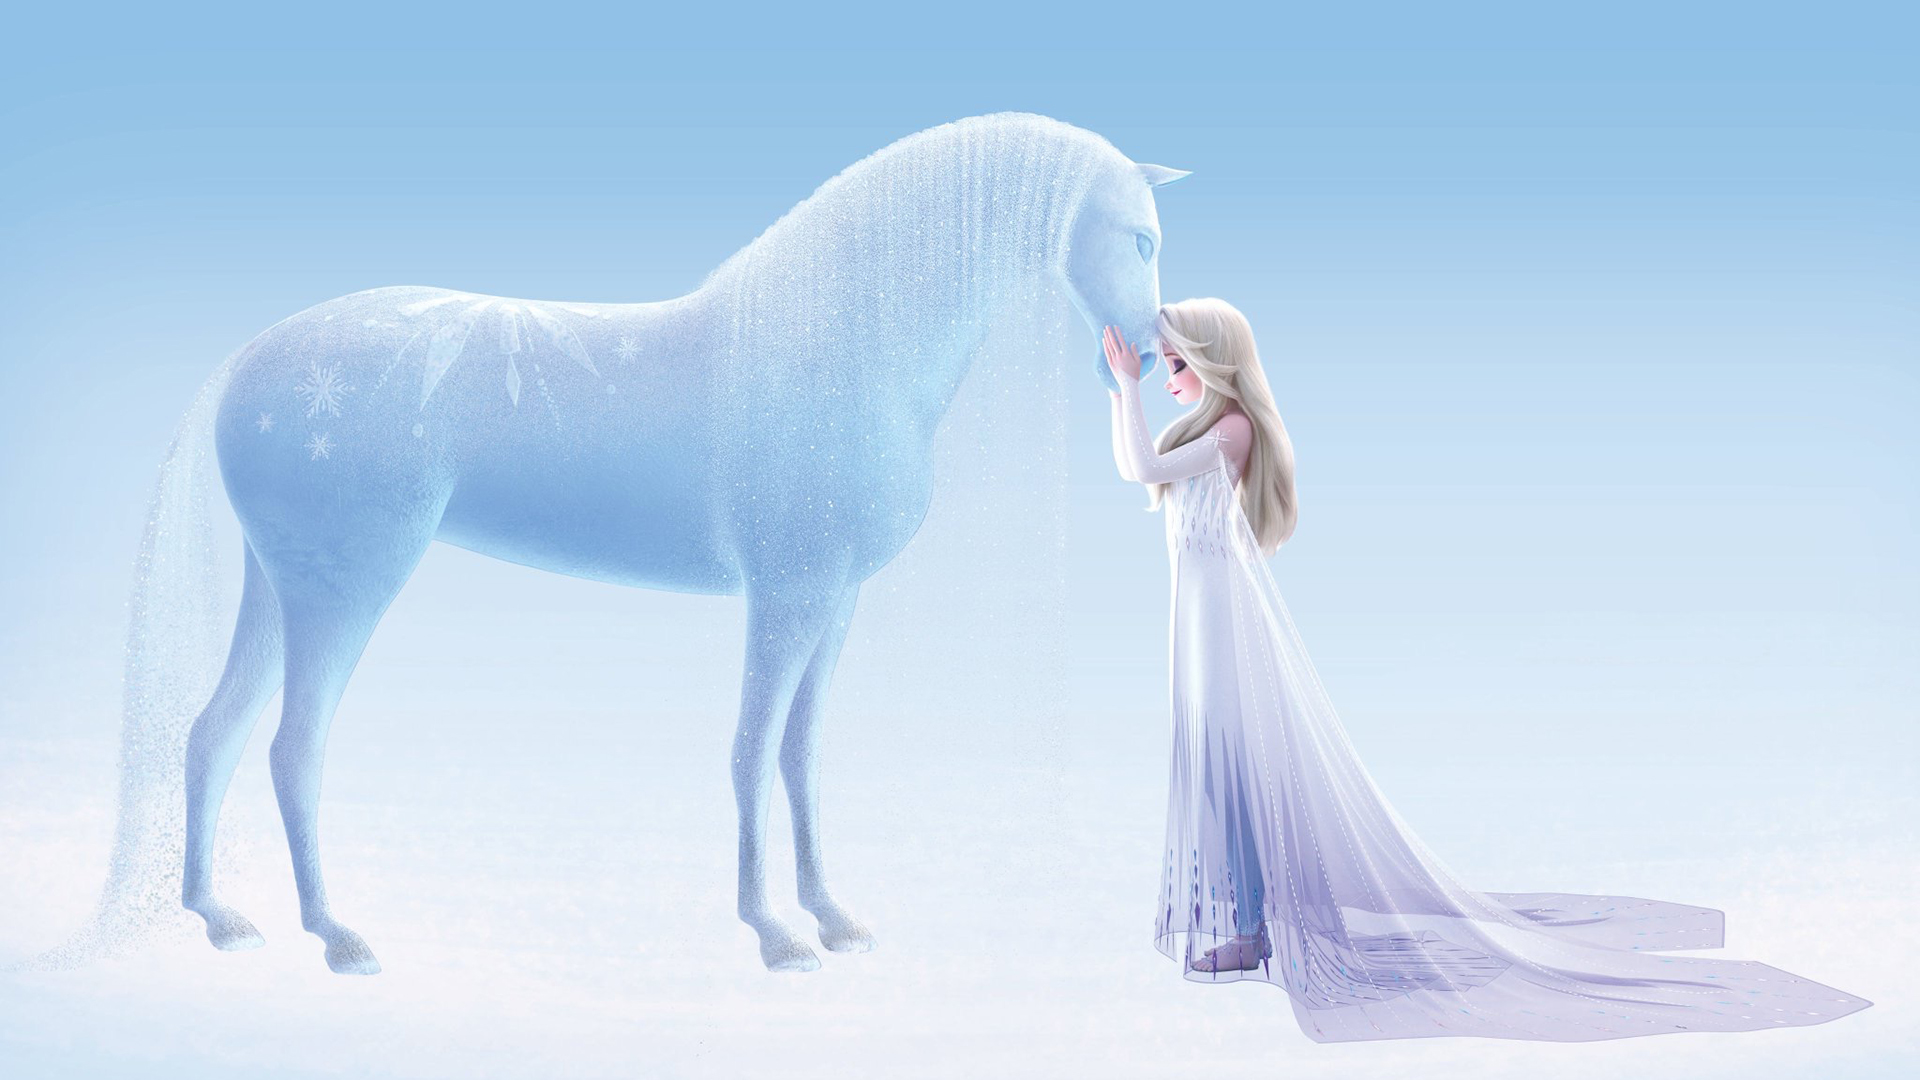 New Image Of Elsa In White Dress Shows Details Of Frozen Version Of The Water Spirit Horse Nokk Youloveit Com